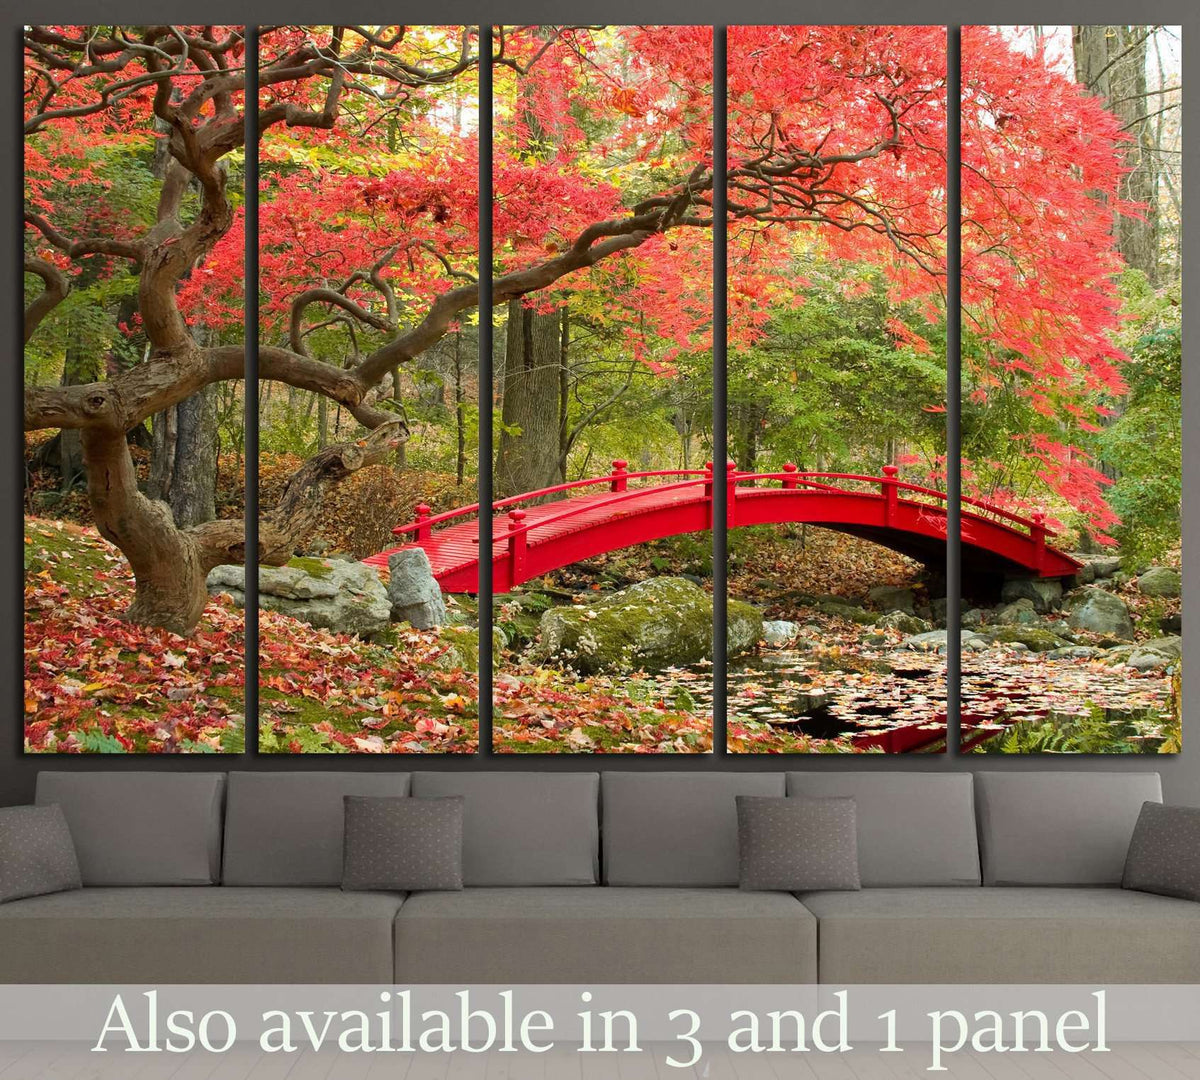 Beautiful Japanese Garden And Red Bridge №1444 Ready To